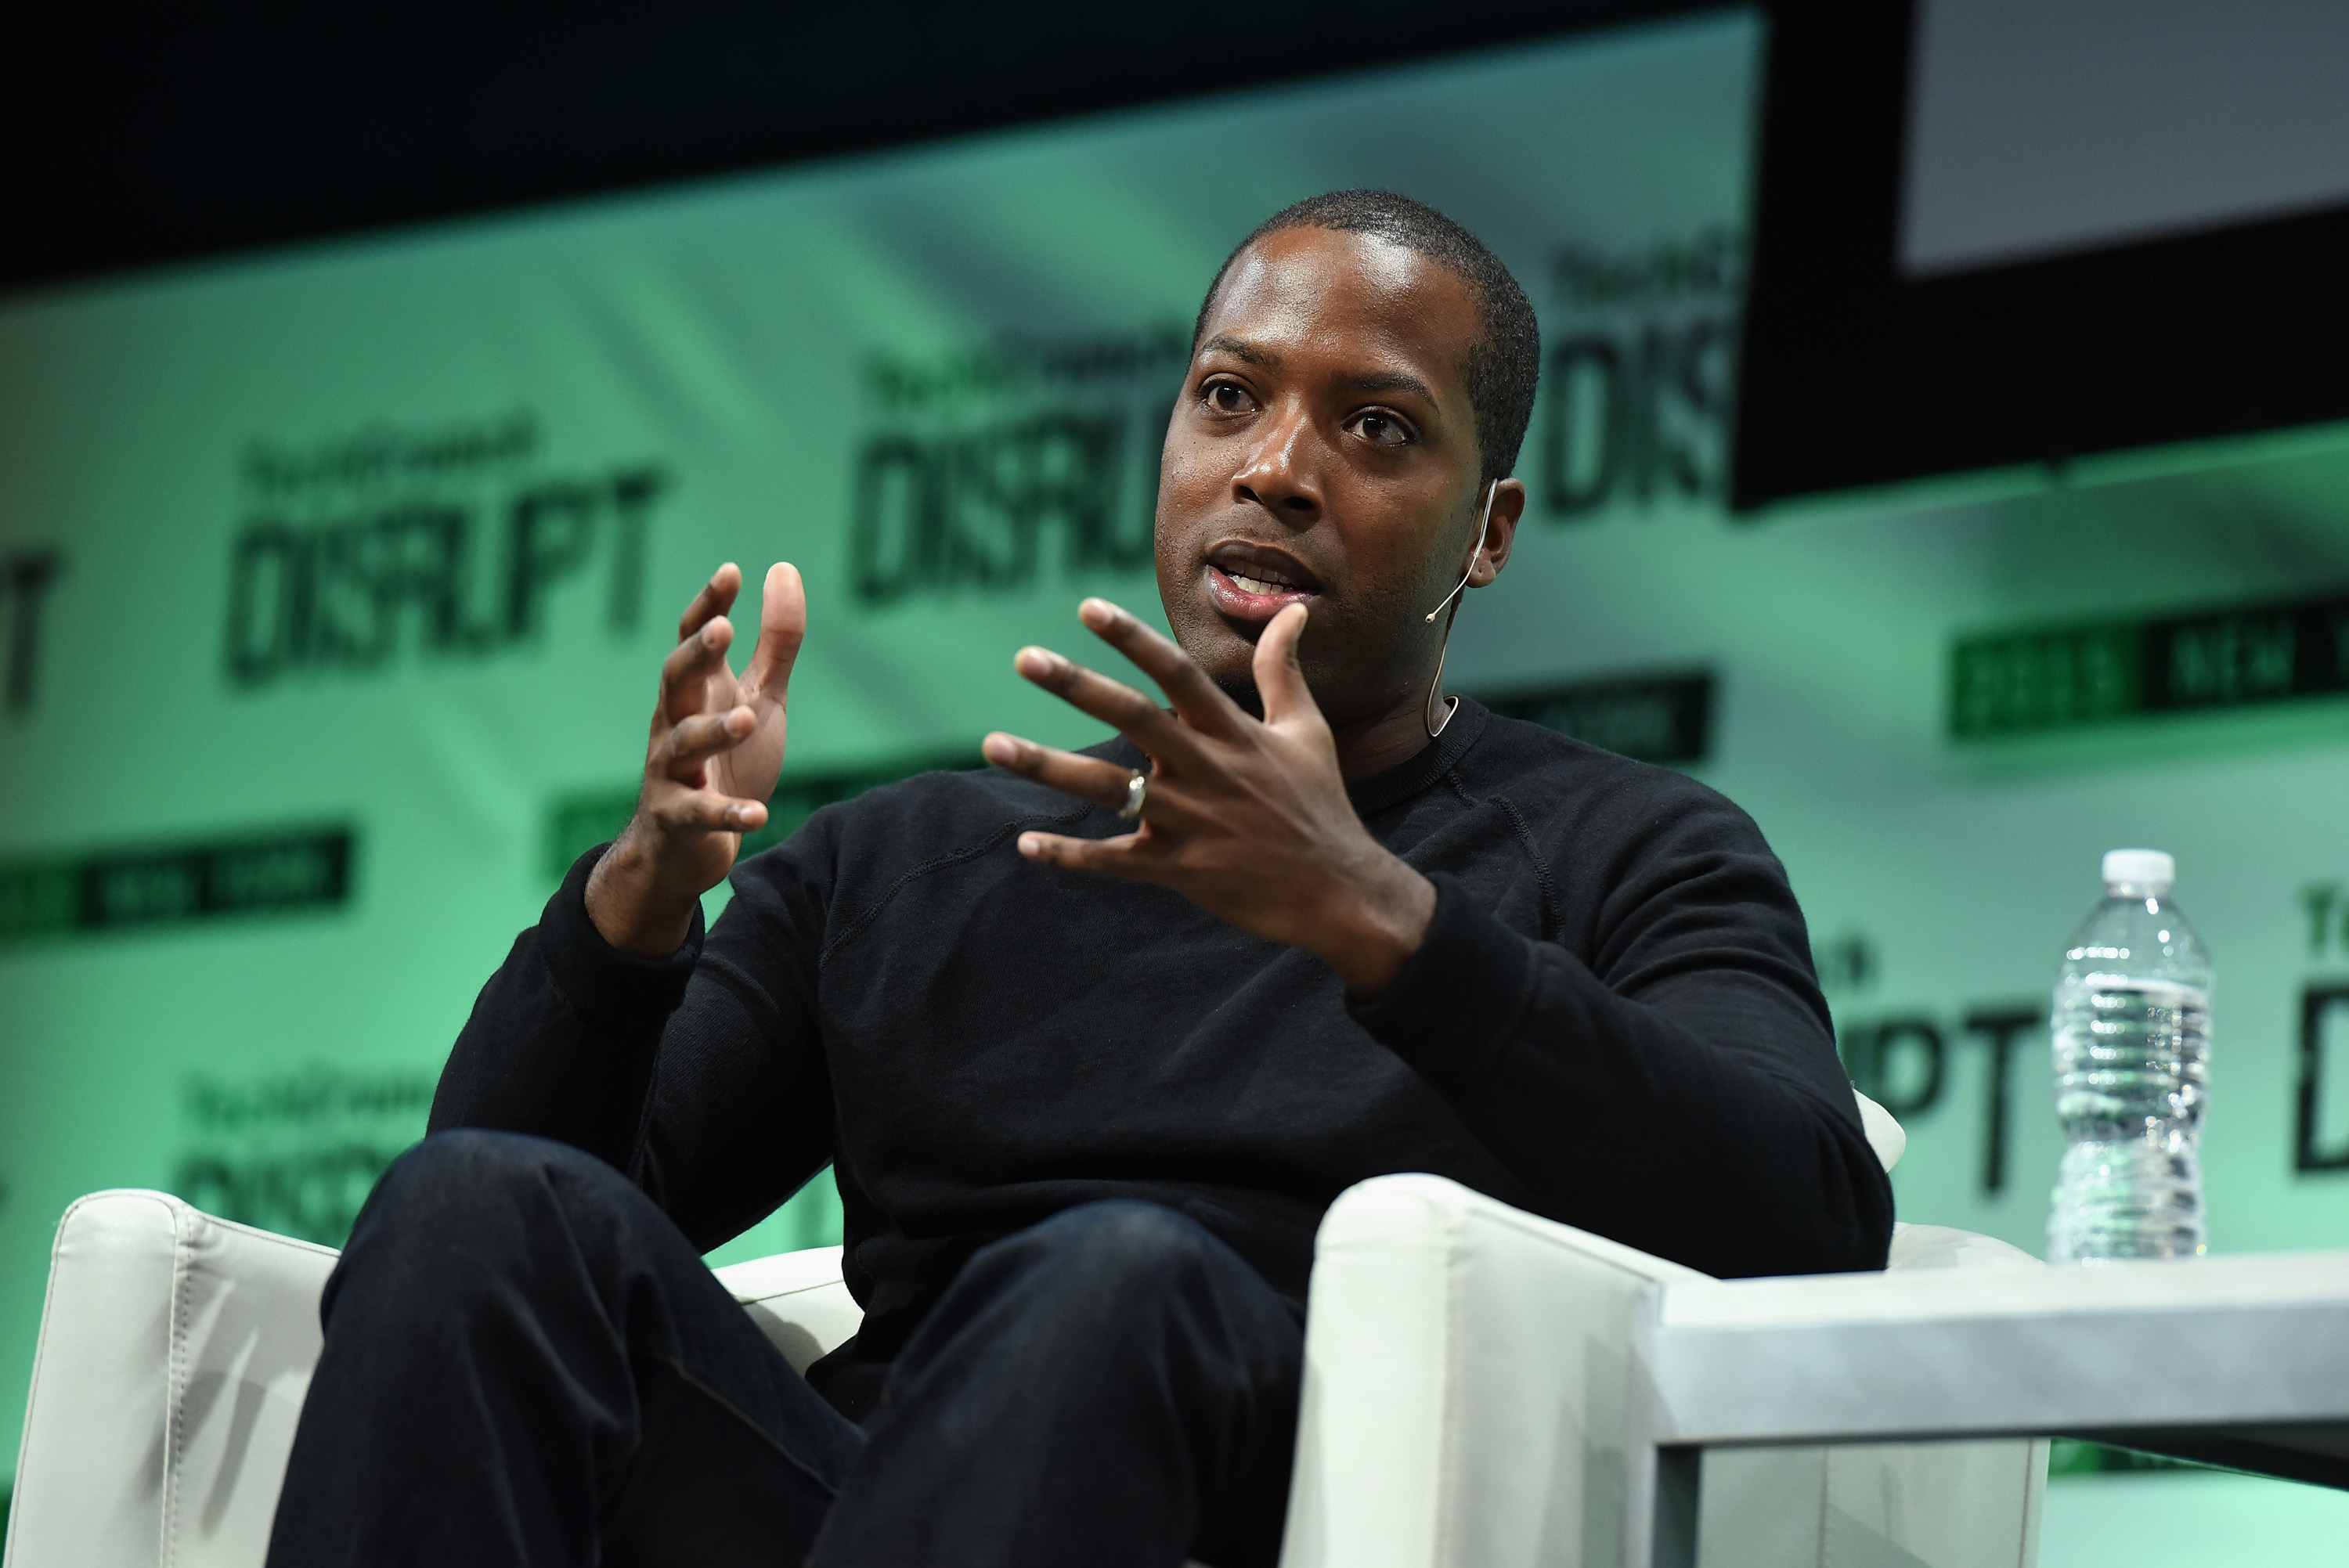 Founder and CEO of Walker & Company Brands, Tristan Walker speaks onstage during TechCrunch Disrupt NY 2015